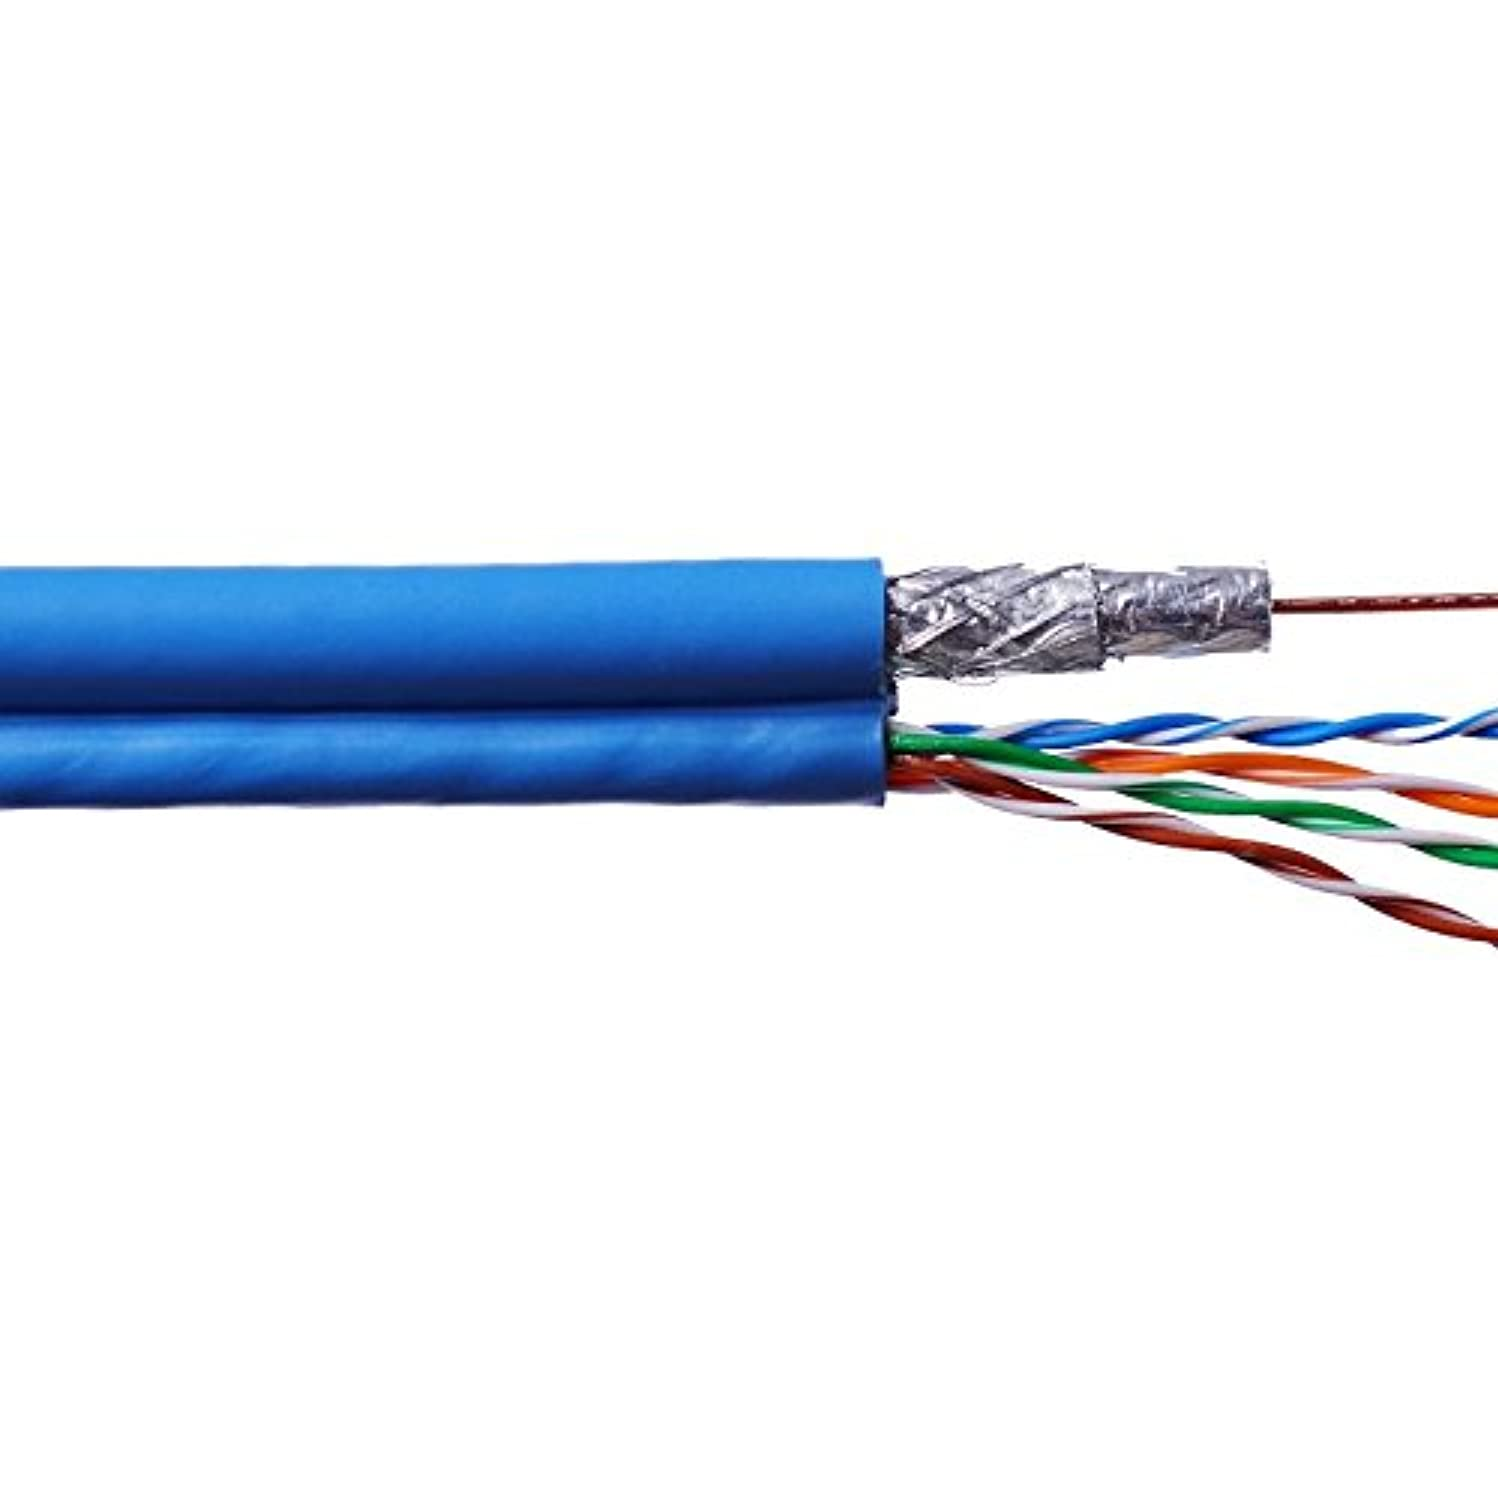 Structured Wire Cable Cabling Voice Video Data Wire Cables 1 24/4PR Cat 5e + 1 RG6 Quad Coax Cable 500FT